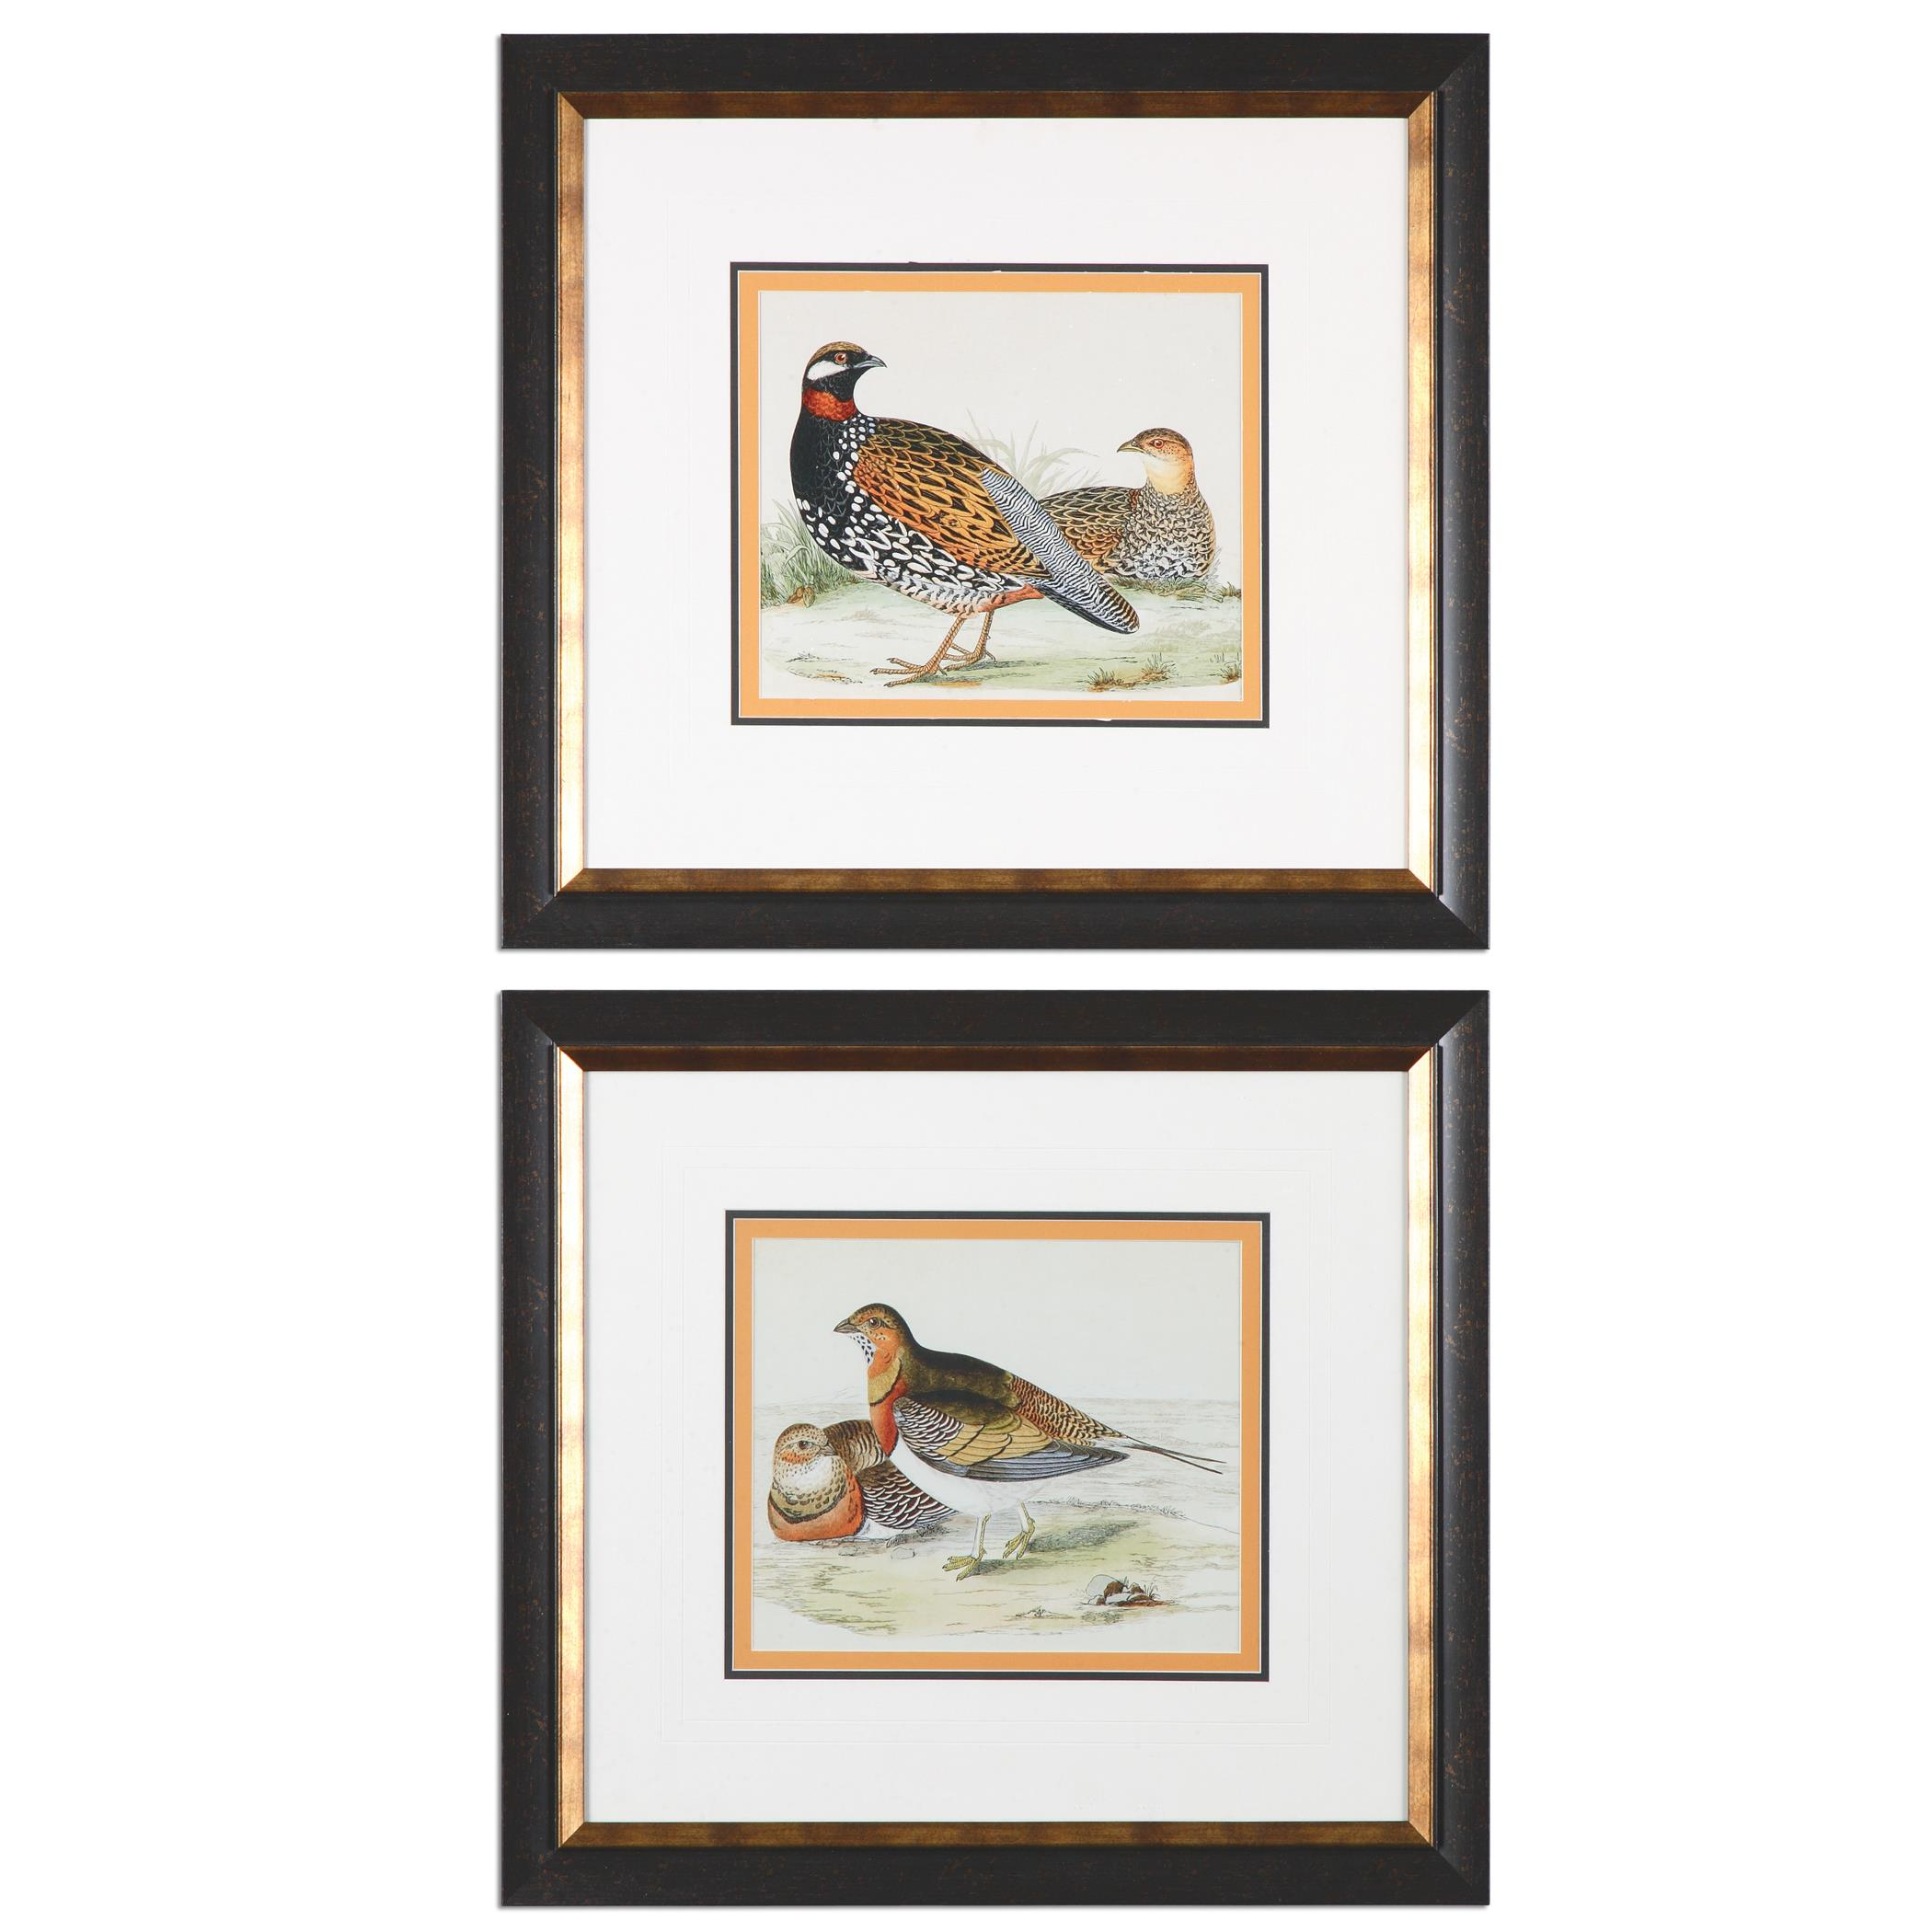 Uttermost Art Pair Of Quail Framed Prints, S/2 - Item Number: 33612